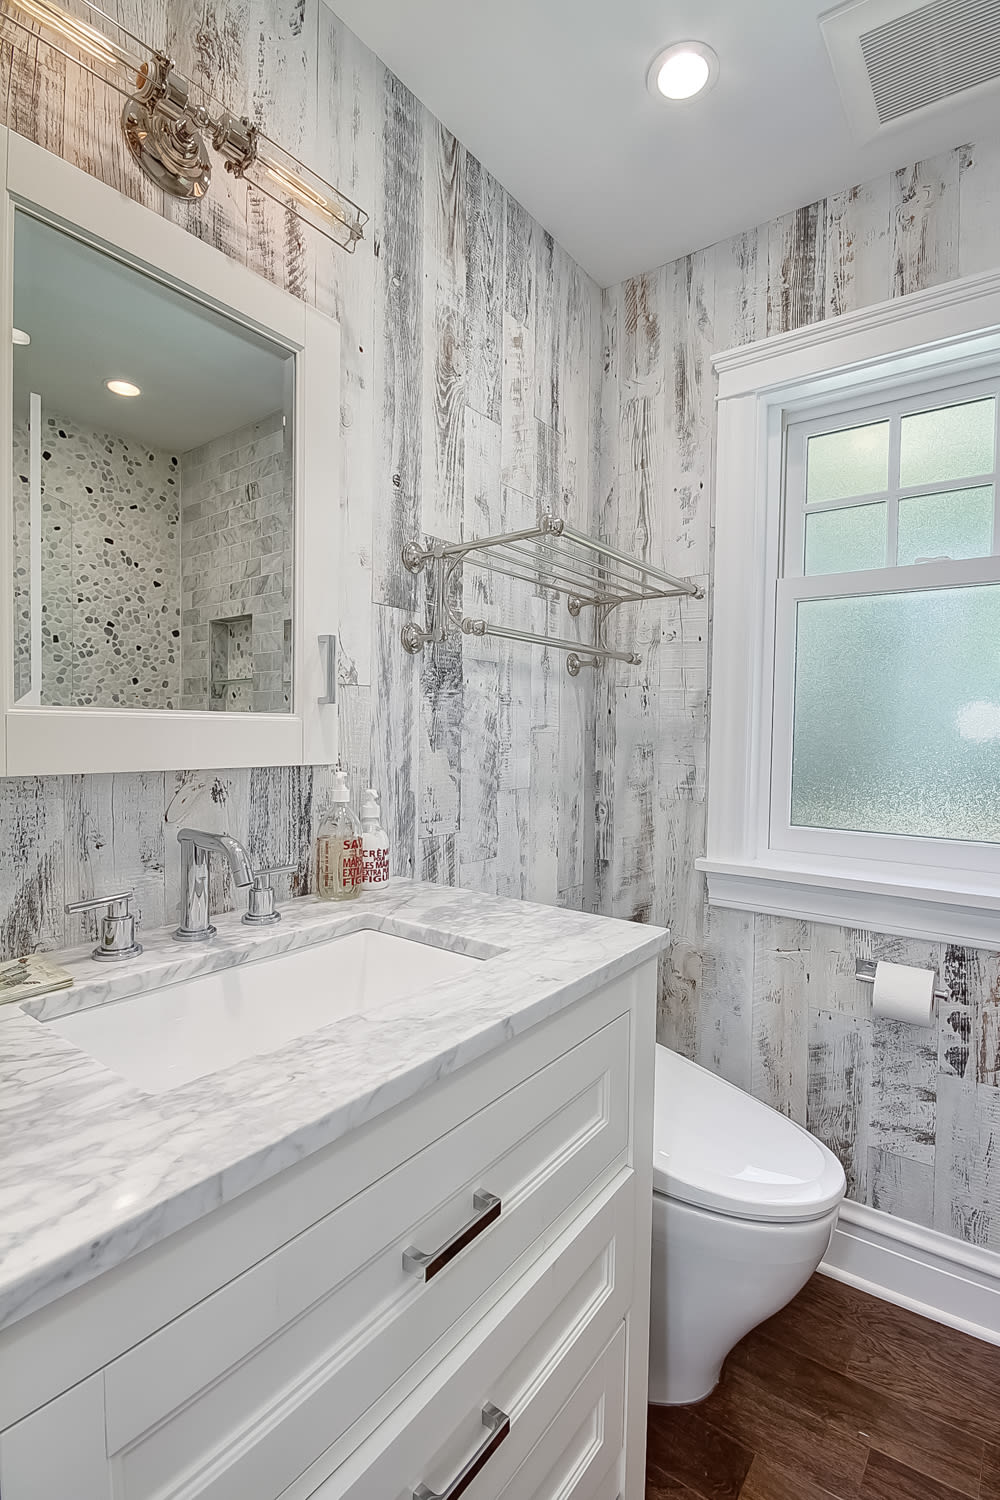 Bathroom accent wall and backsplash created using Stikwood peel and stick reclaimed weathered wood white wood planks.